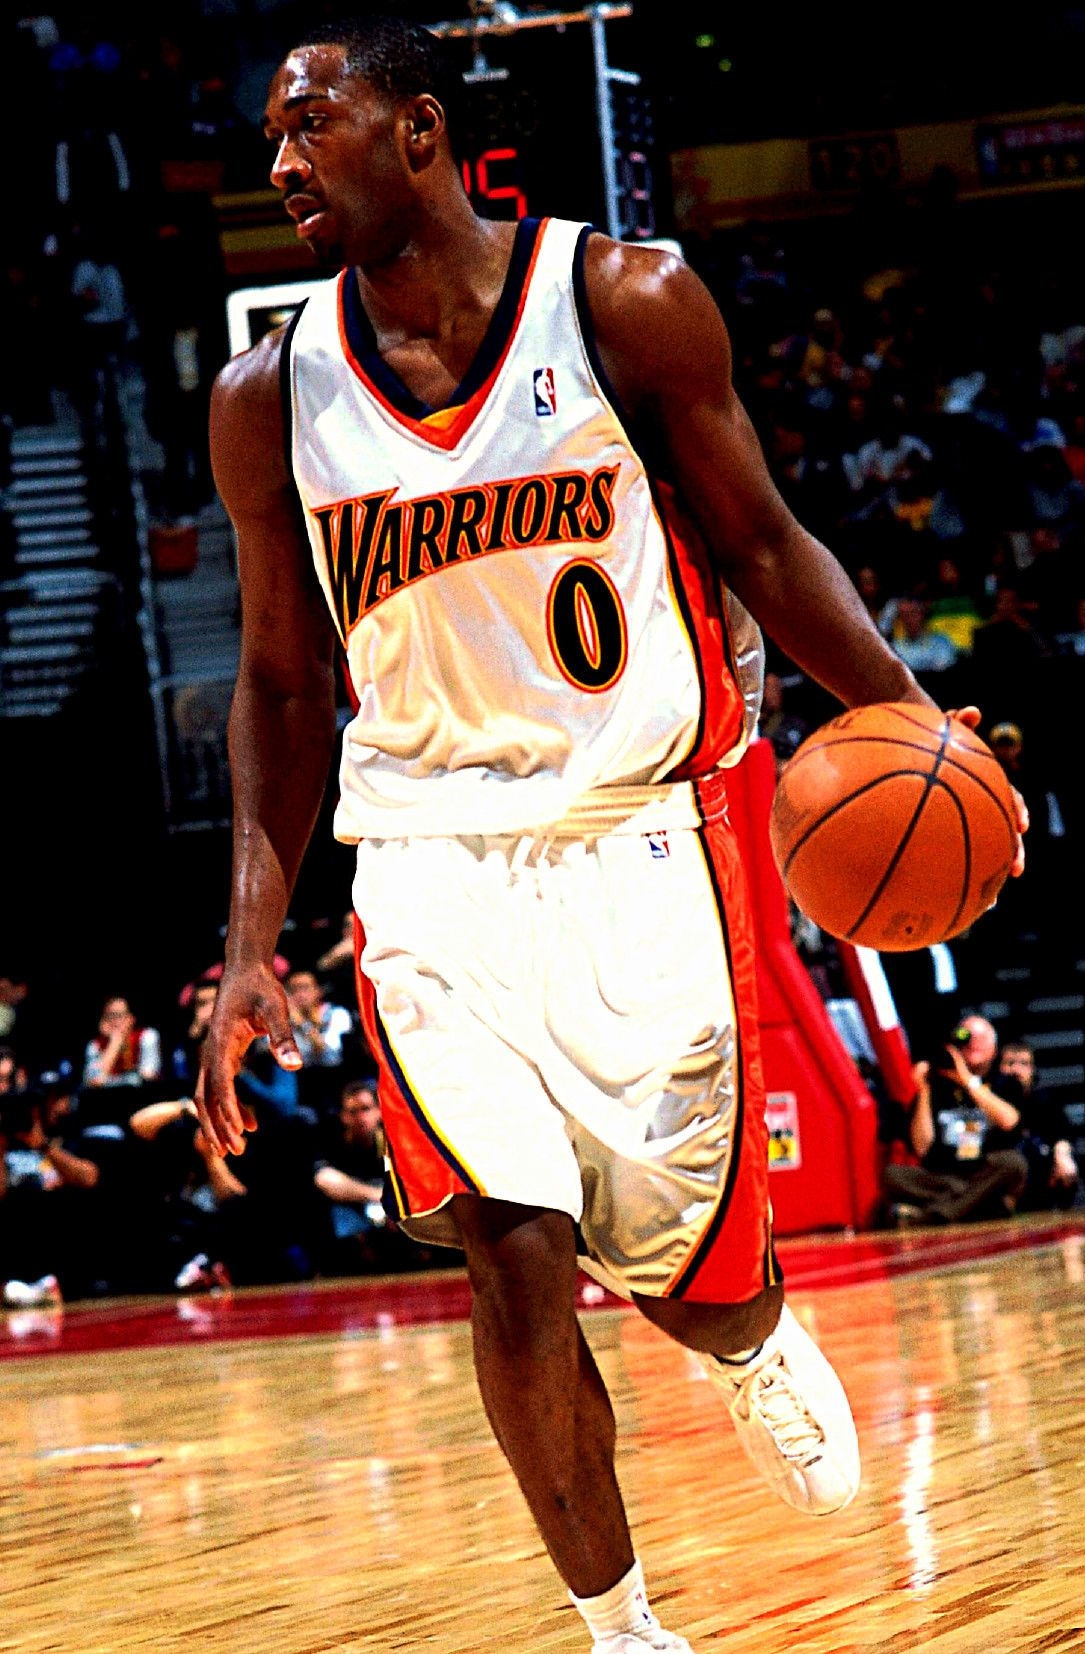 Gilbert Arenas. Gilbert Arenas with the Warriors ... 06d03ee07